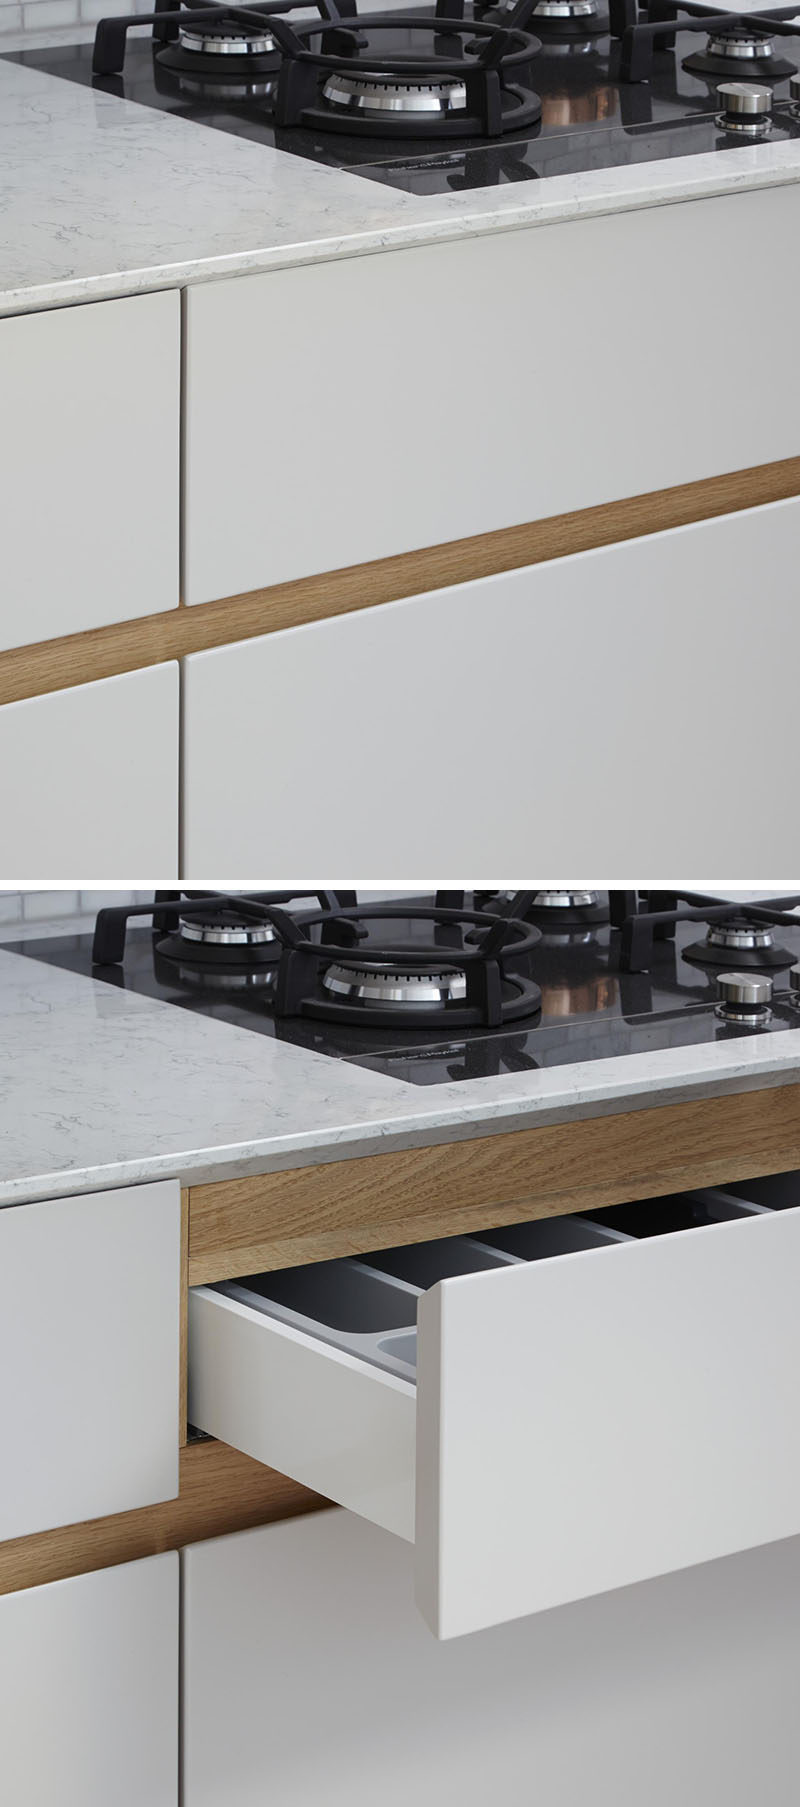 Merveilleux Kitchen Design Idea   Cabinet Hardware Alternatives // Include A Recessed  Groove In The Design